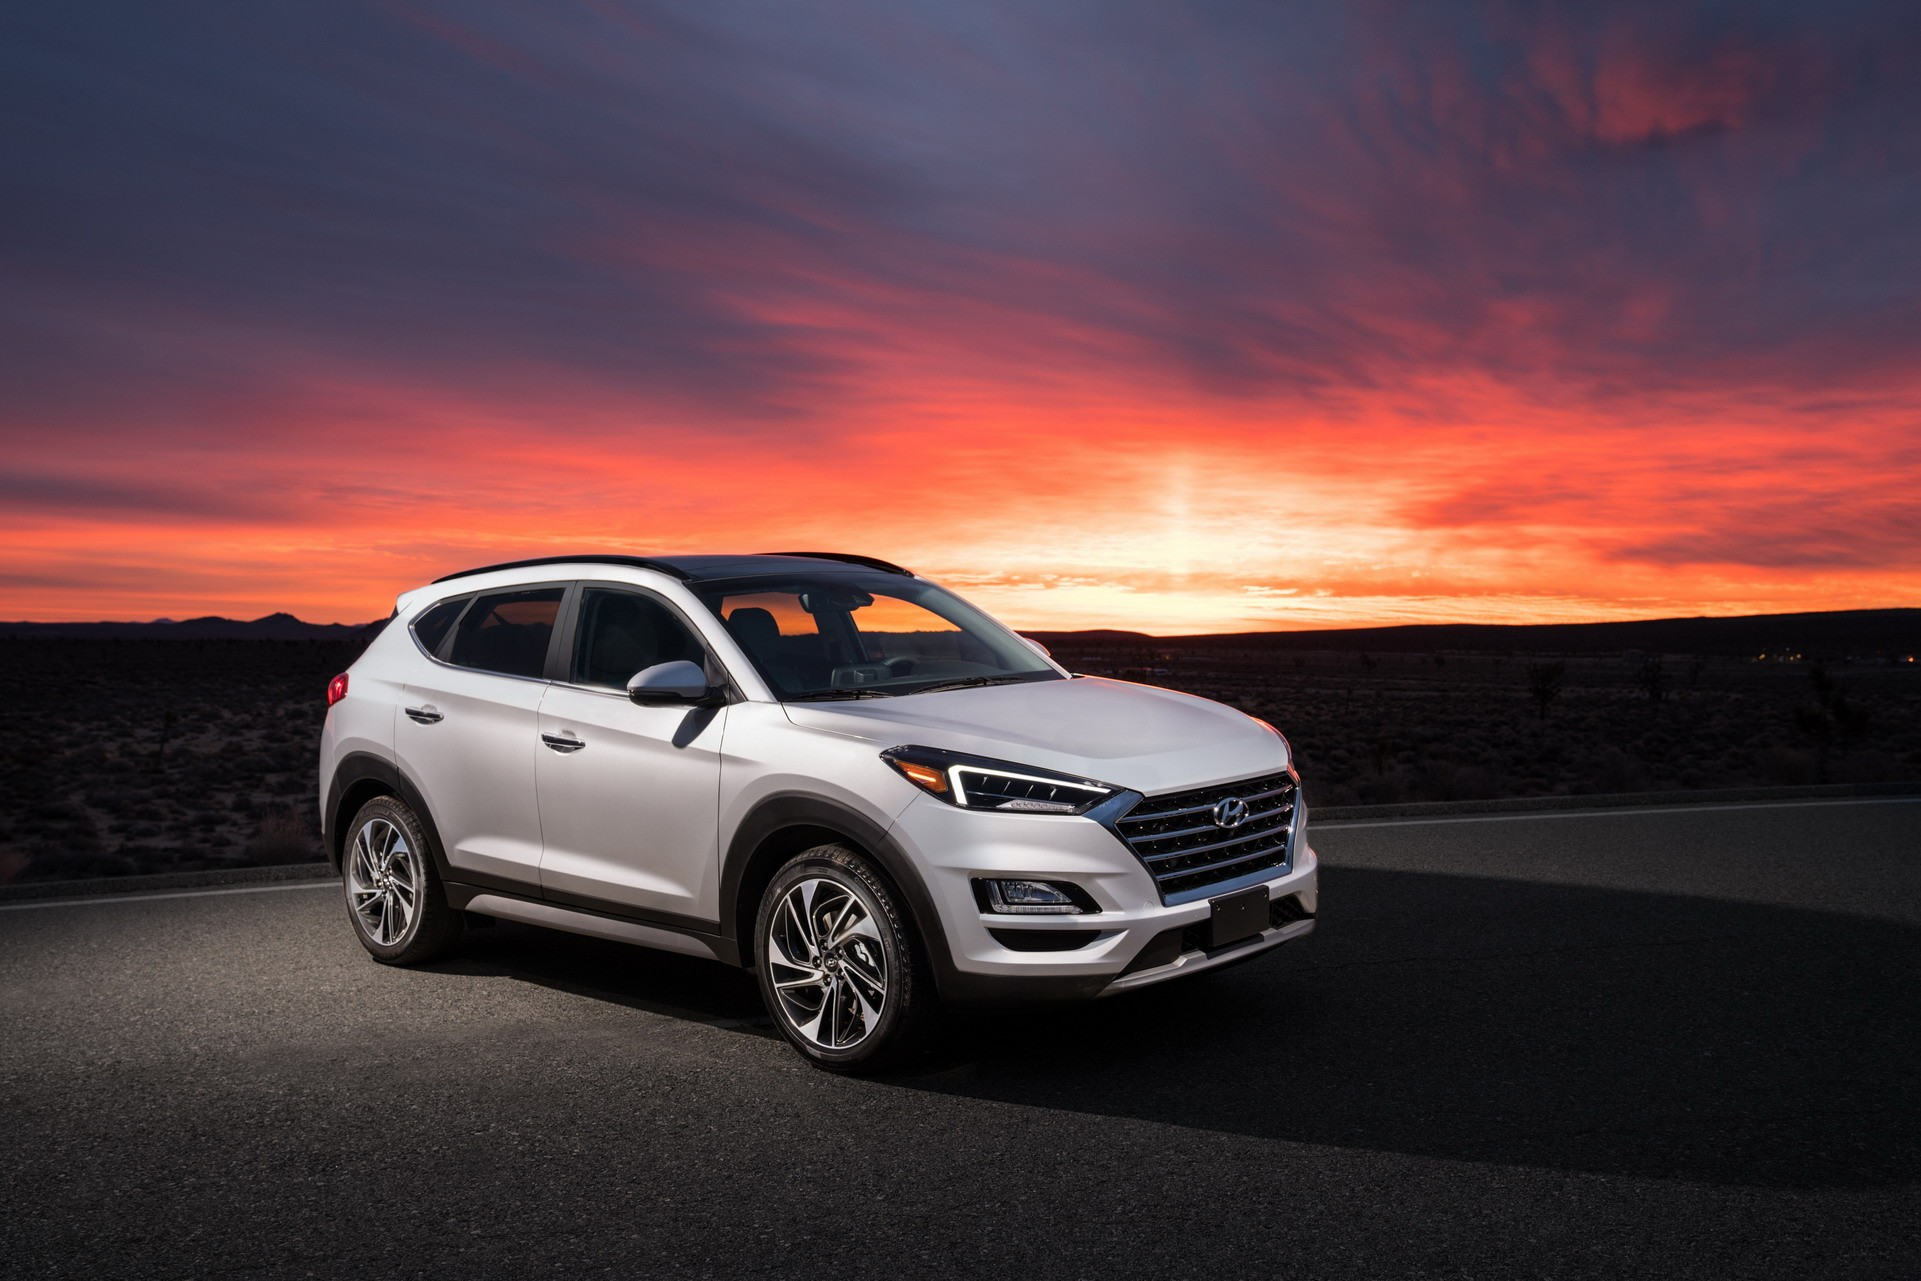 2019 Hyundai Tucson Debuts With Refreshed Face, Drops 1.6 Turbo - autoevolution